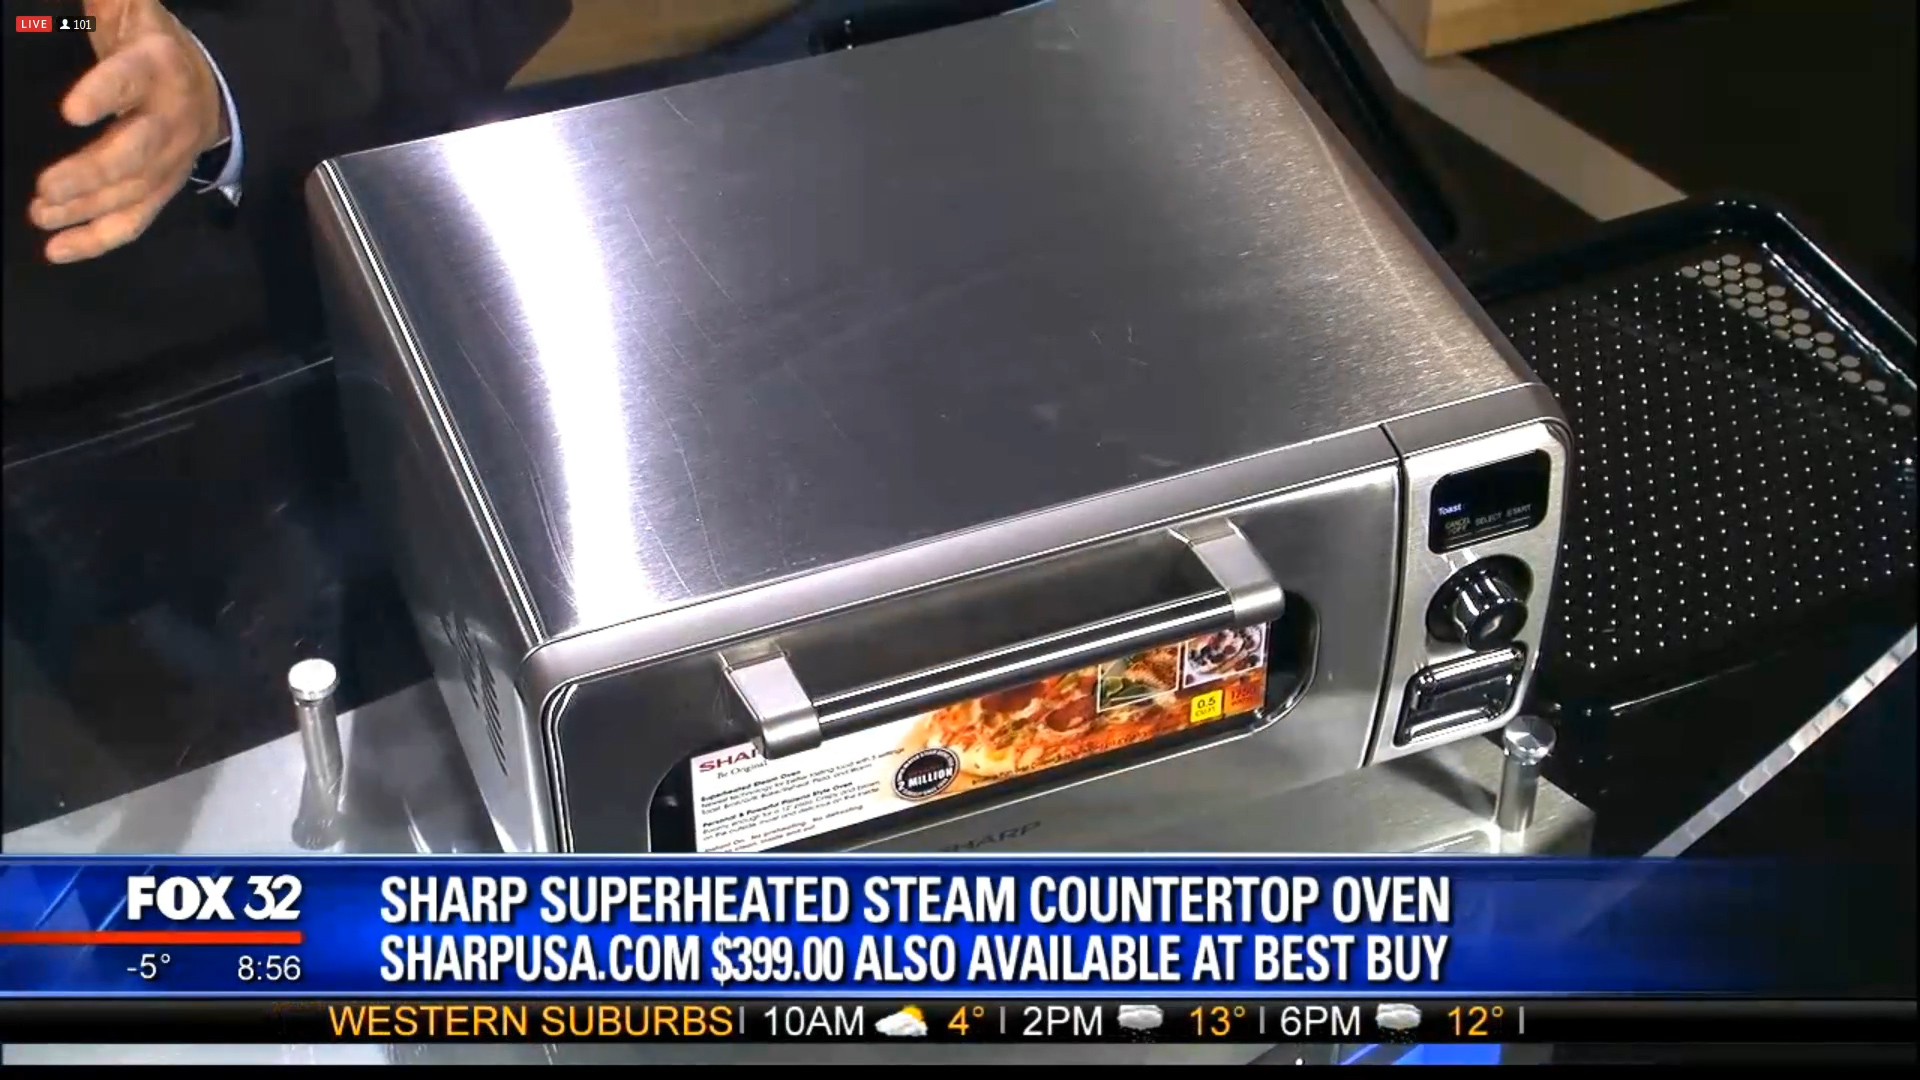 SHARP SUPERHEATED STEAM COUNTERTOP OVEN - $399.00Shop Now